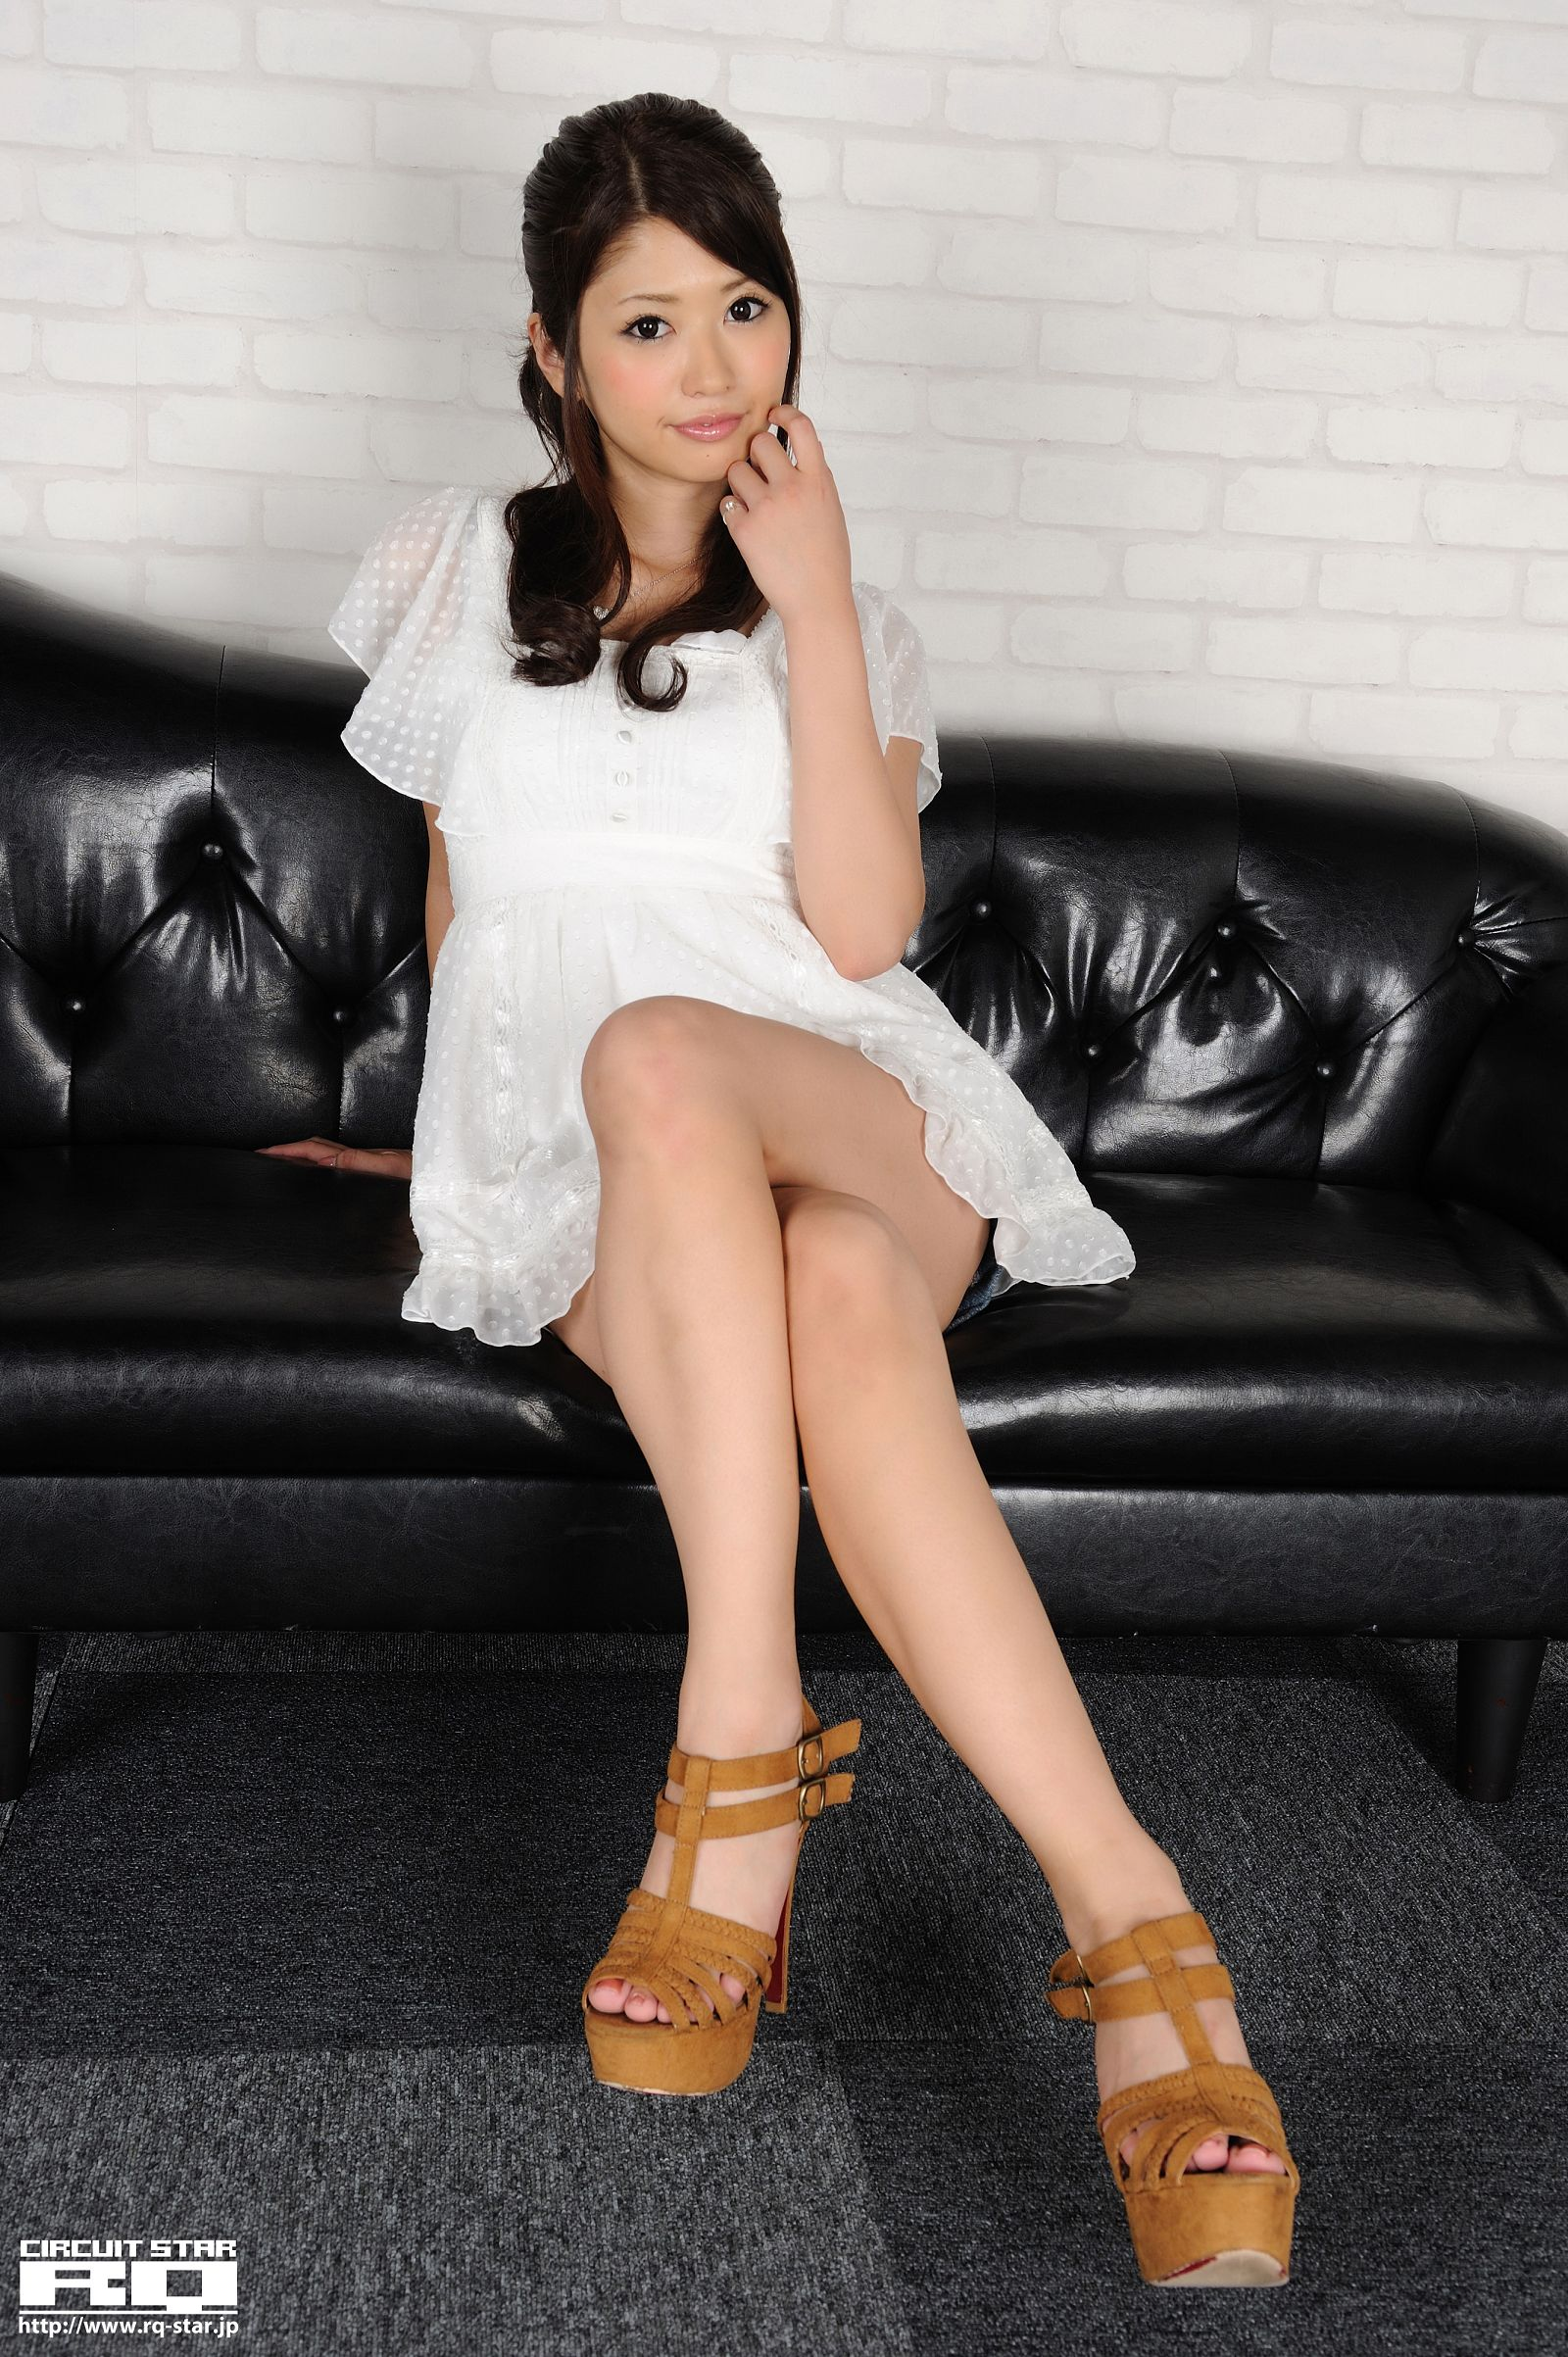 [RQ STAR美女] NO.00529 Hitomi Nose 能勢ひとみ Private Dress[72P] RQ STAR 第3张